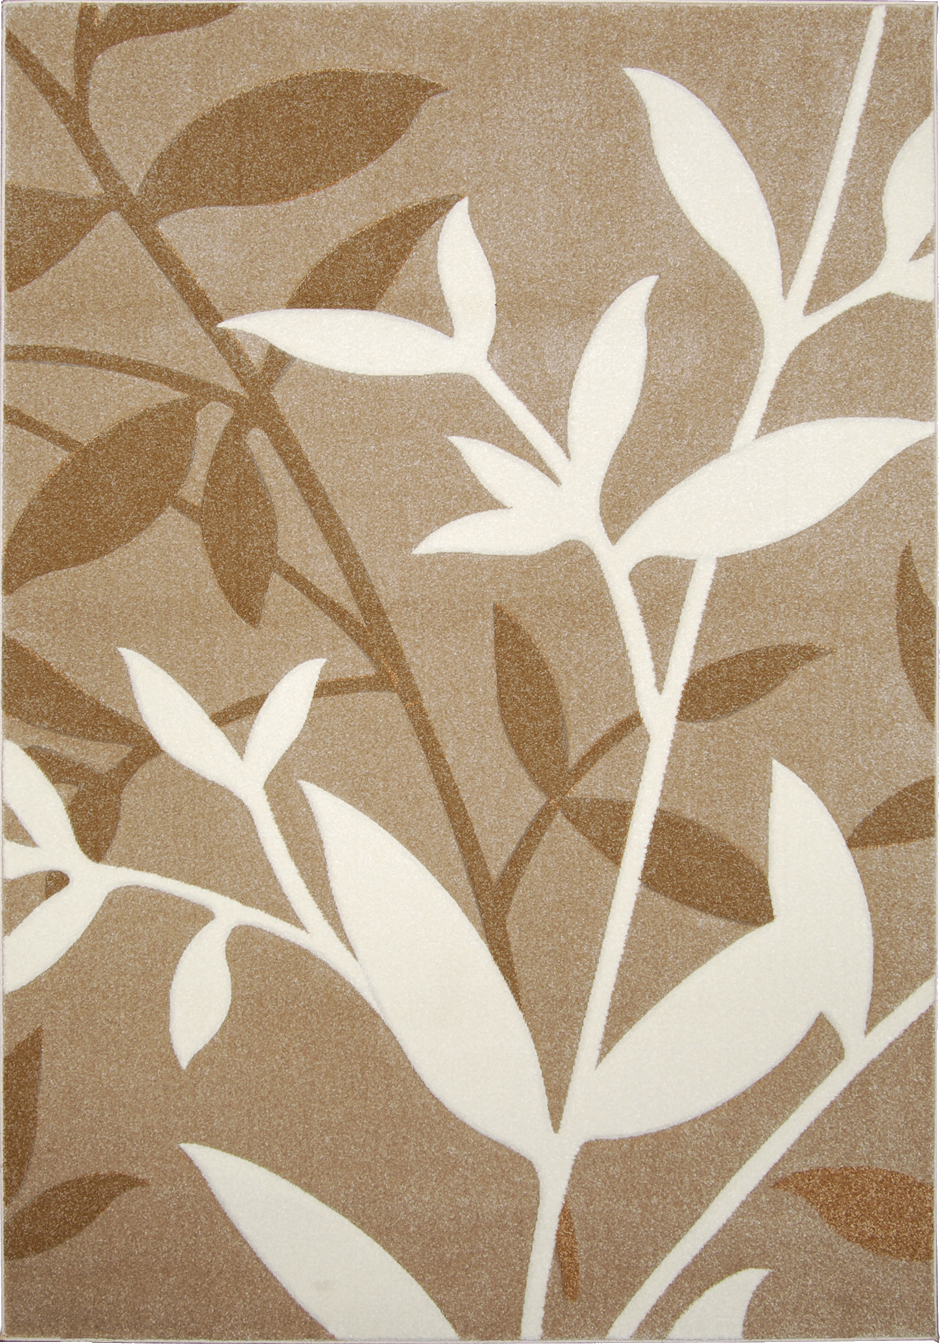 Home Dynamix Sumatra Area Rug 4342A-150 Beige Branches Leaves at Sears.com